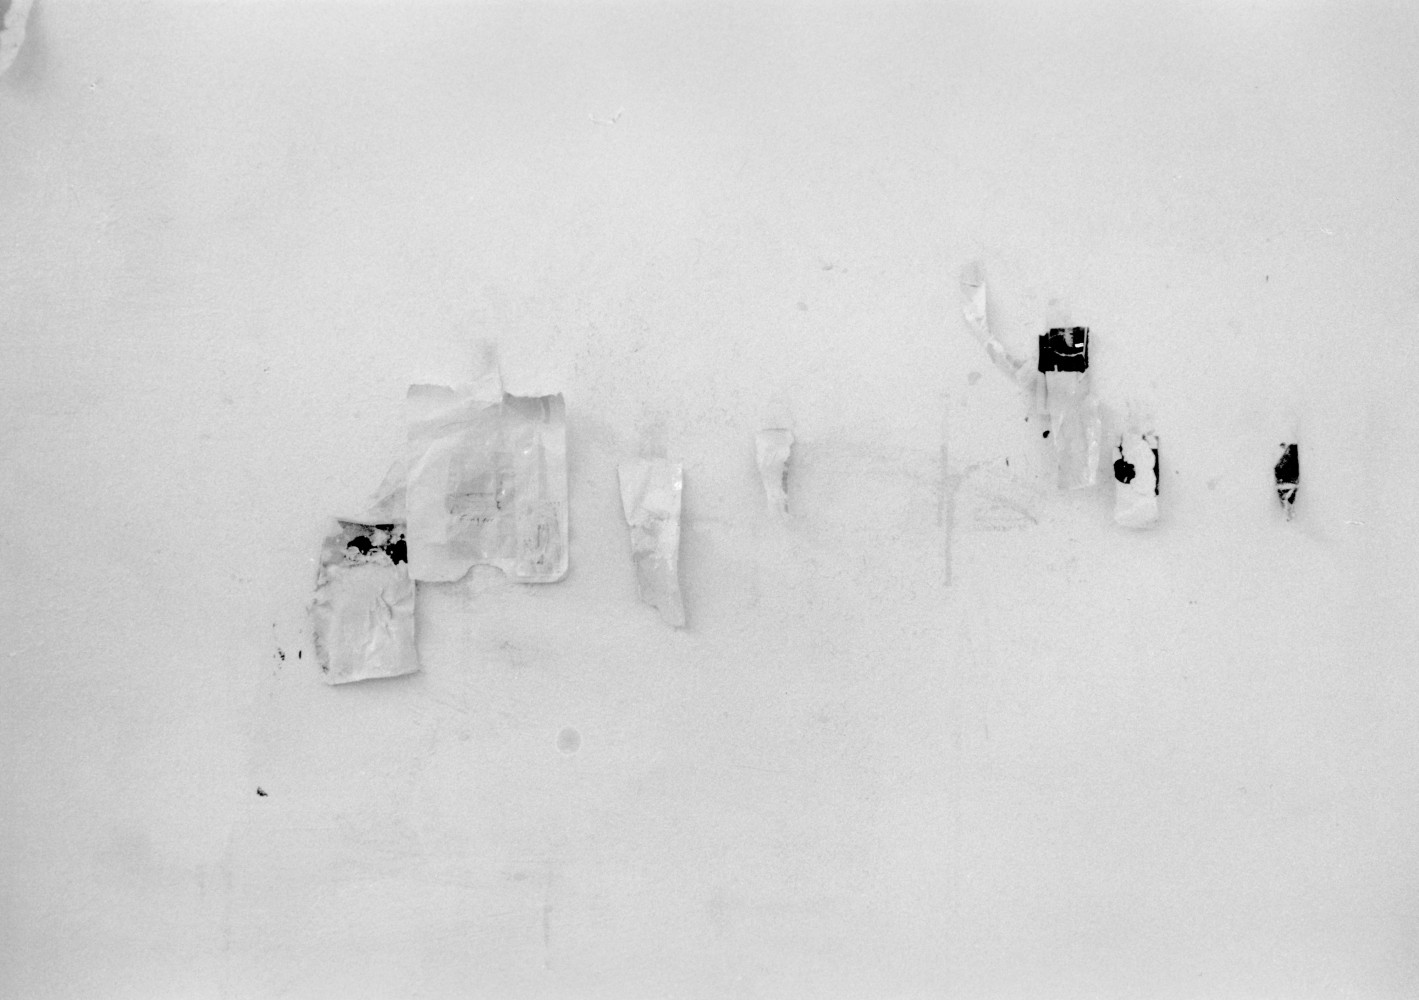 Lawrence Carroll, 'Wall piece', Installation view, 1998